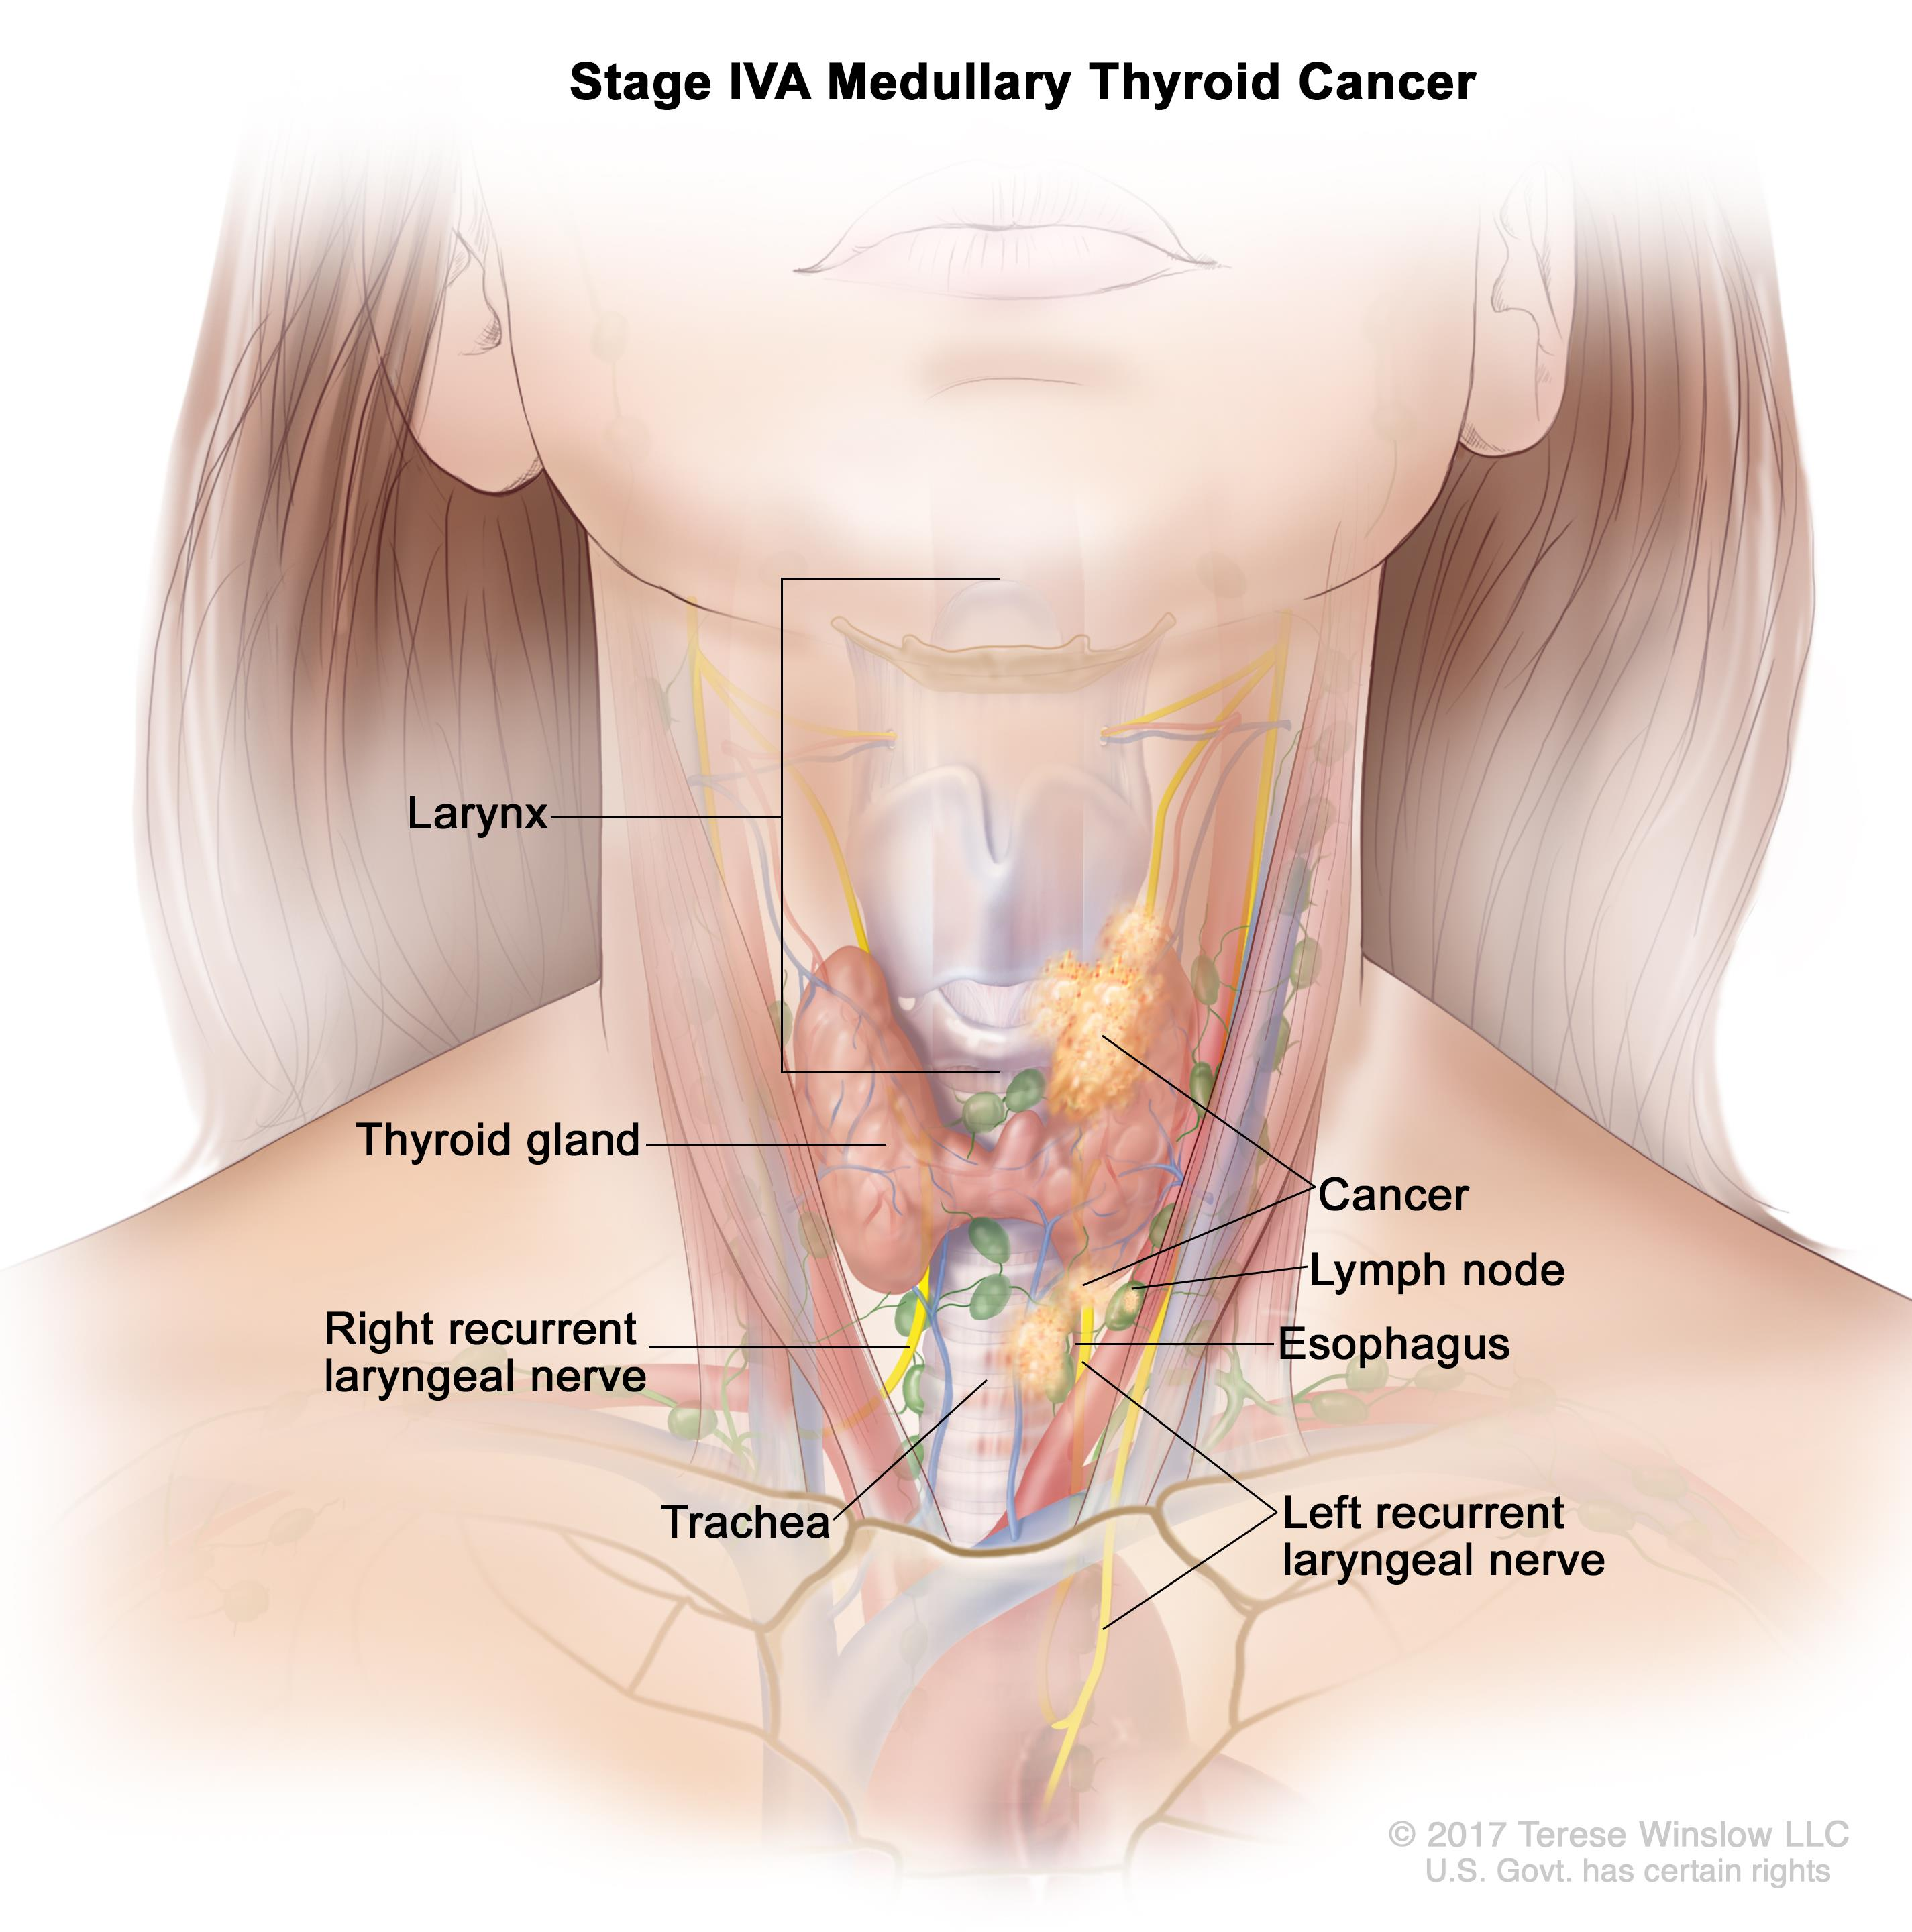 Stage IVA medullary thyroid cancer; drawing shows cancer that has spread from the thyroid gland to the larynx, the esophagus, the left recurrent laryngeal nerve, the trachea, and a lymph node on one side of the neck. Also shown is the right recurrent laryngeal nerve.